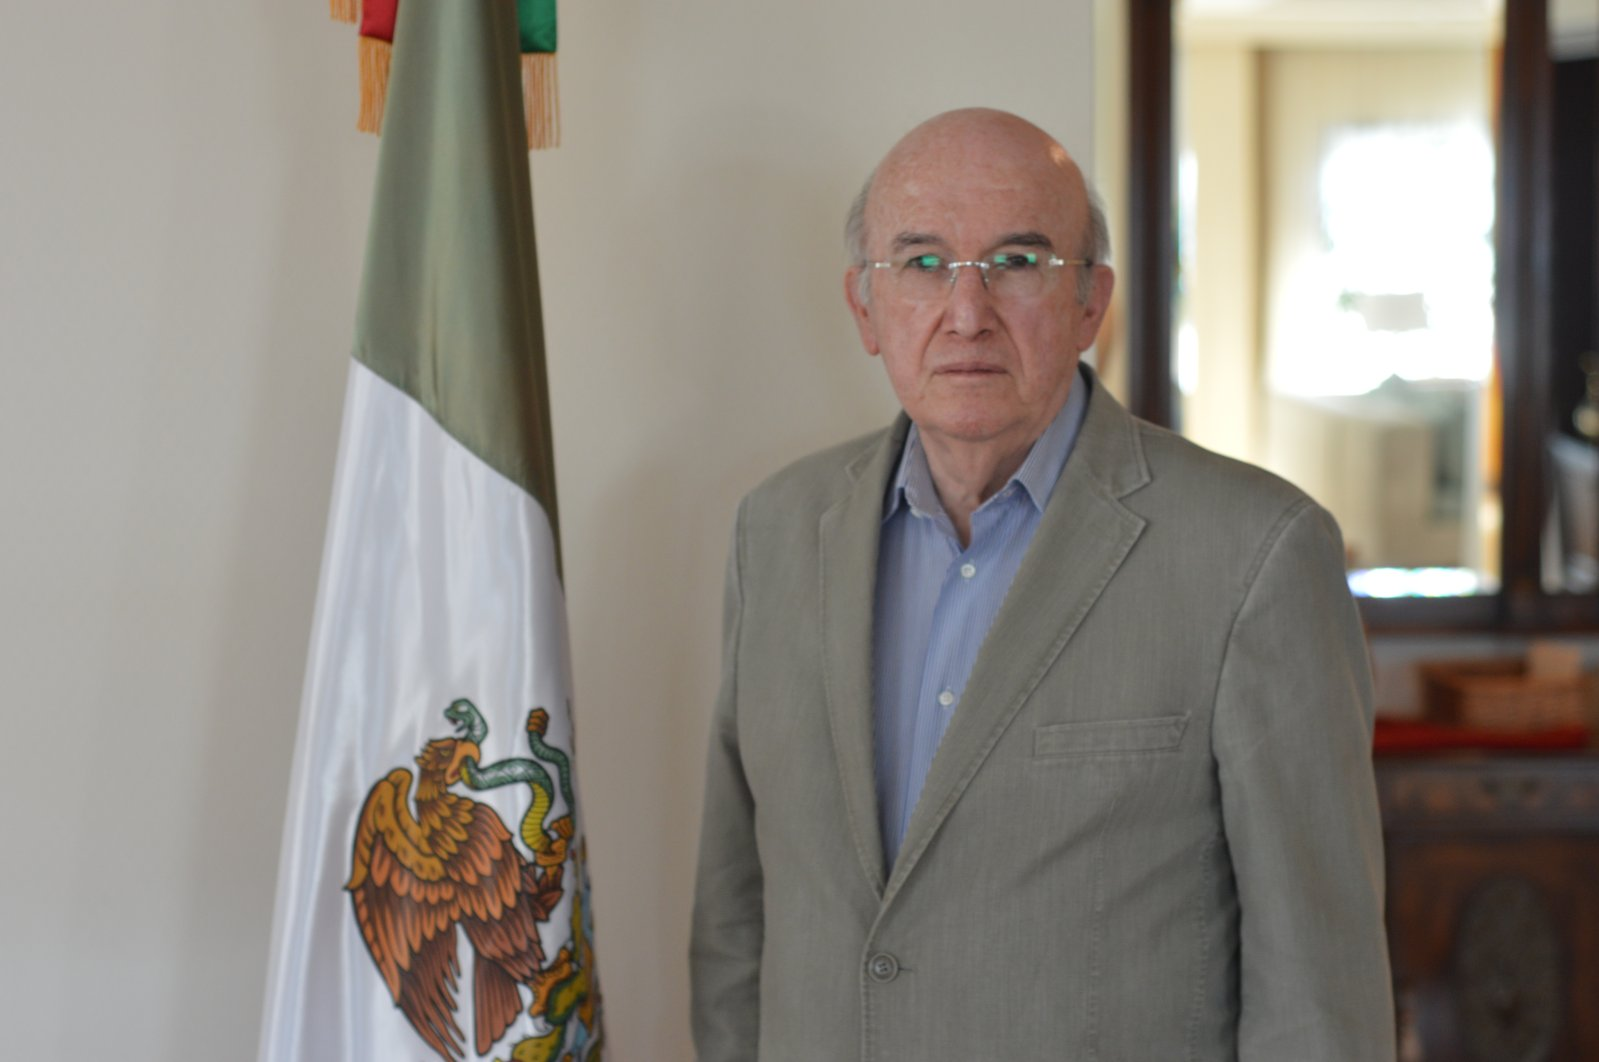 Mexico's Ambassador to Turkey Jose Luis Martinez y Hernandez is seen in this photo provided by the embassy. (Courtesy of the Mexican embassy in Ankara)